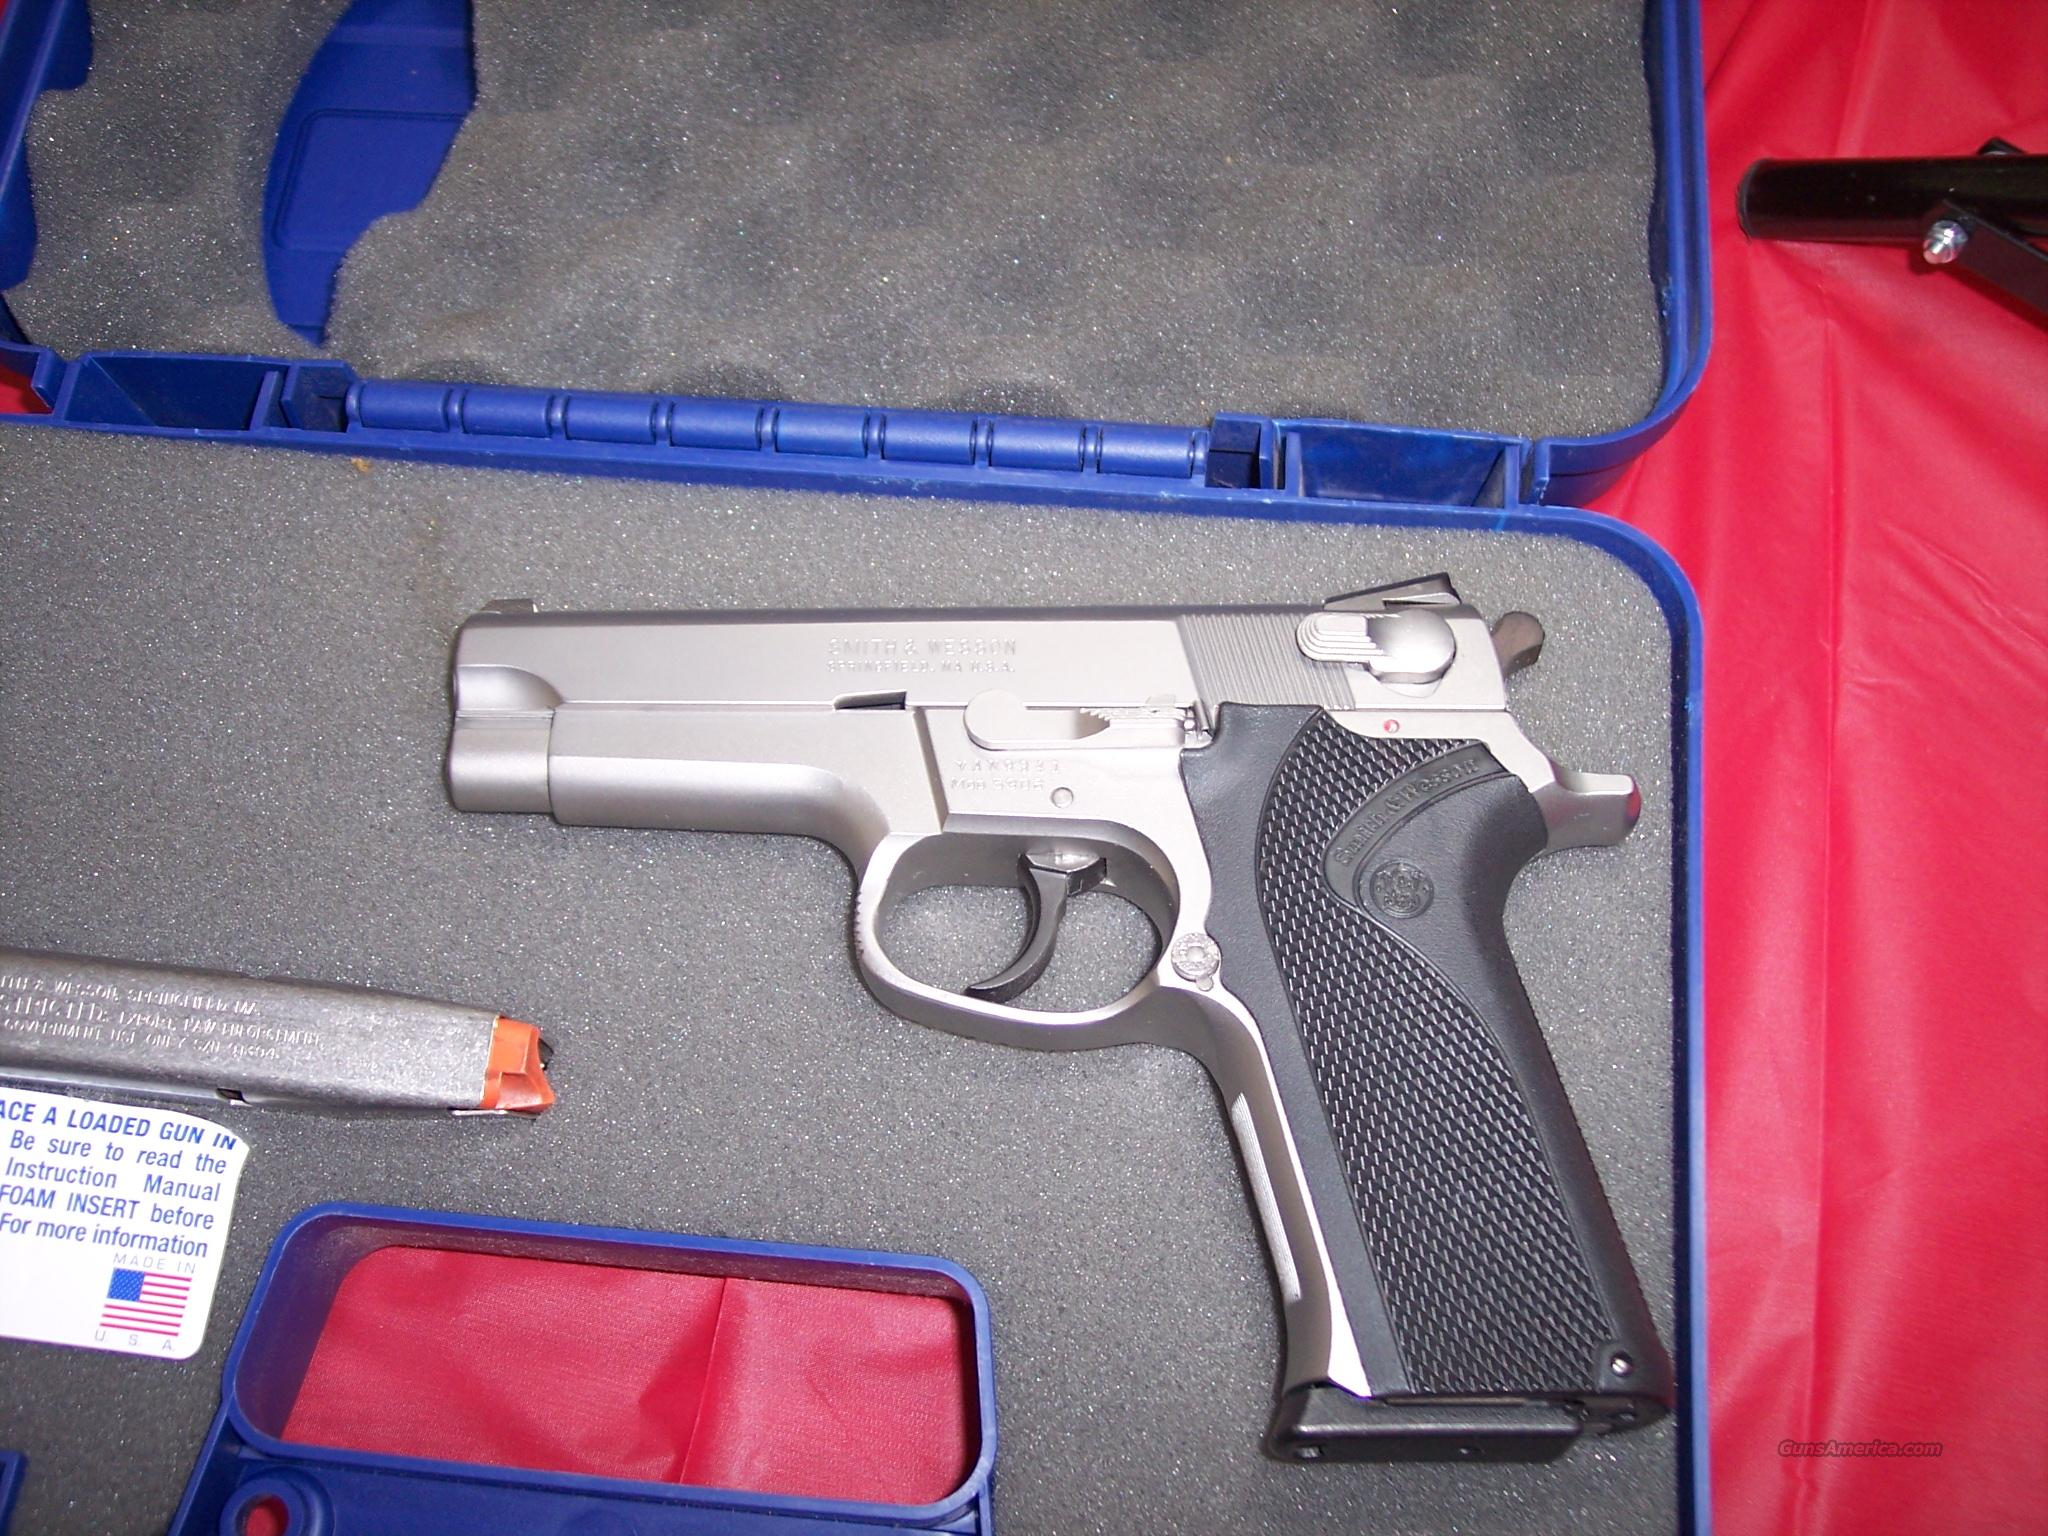 S&W 5906 WITH NITE SITES  Guns > Pistols > Smith & Wesson Pistols - Autos > Steel Frame